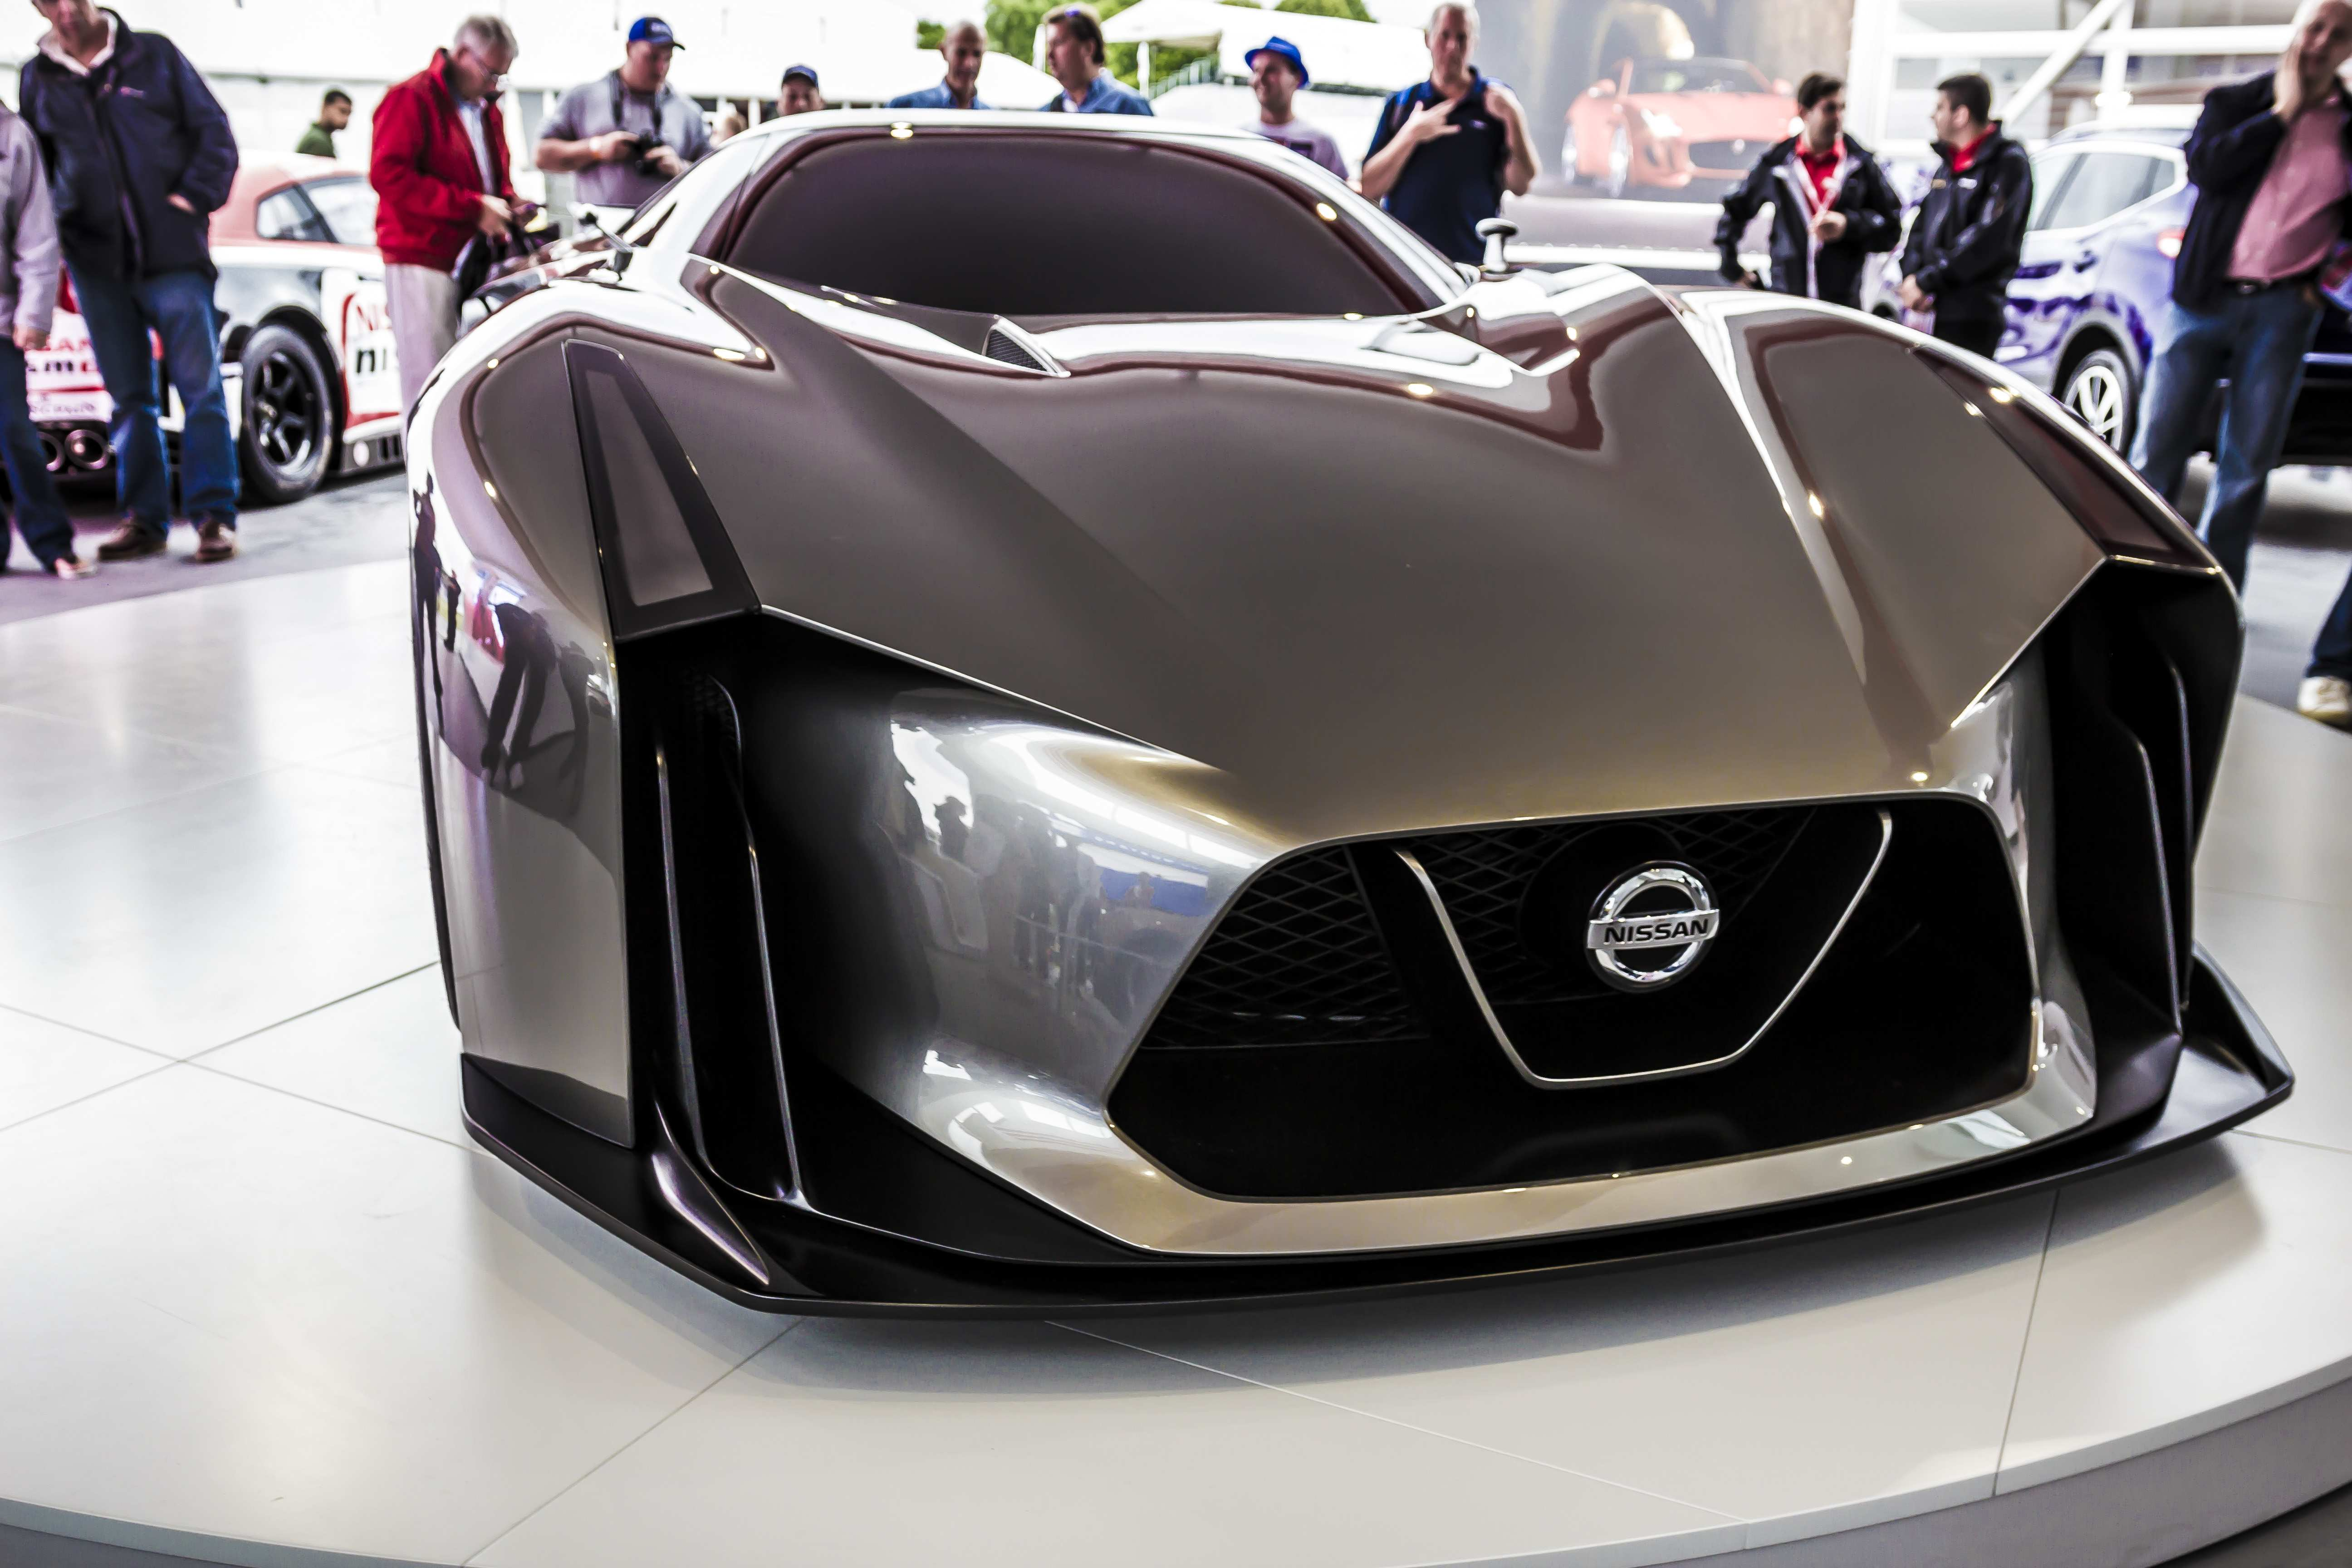 41 New Nissan Concept 2020 Top Speed Interior